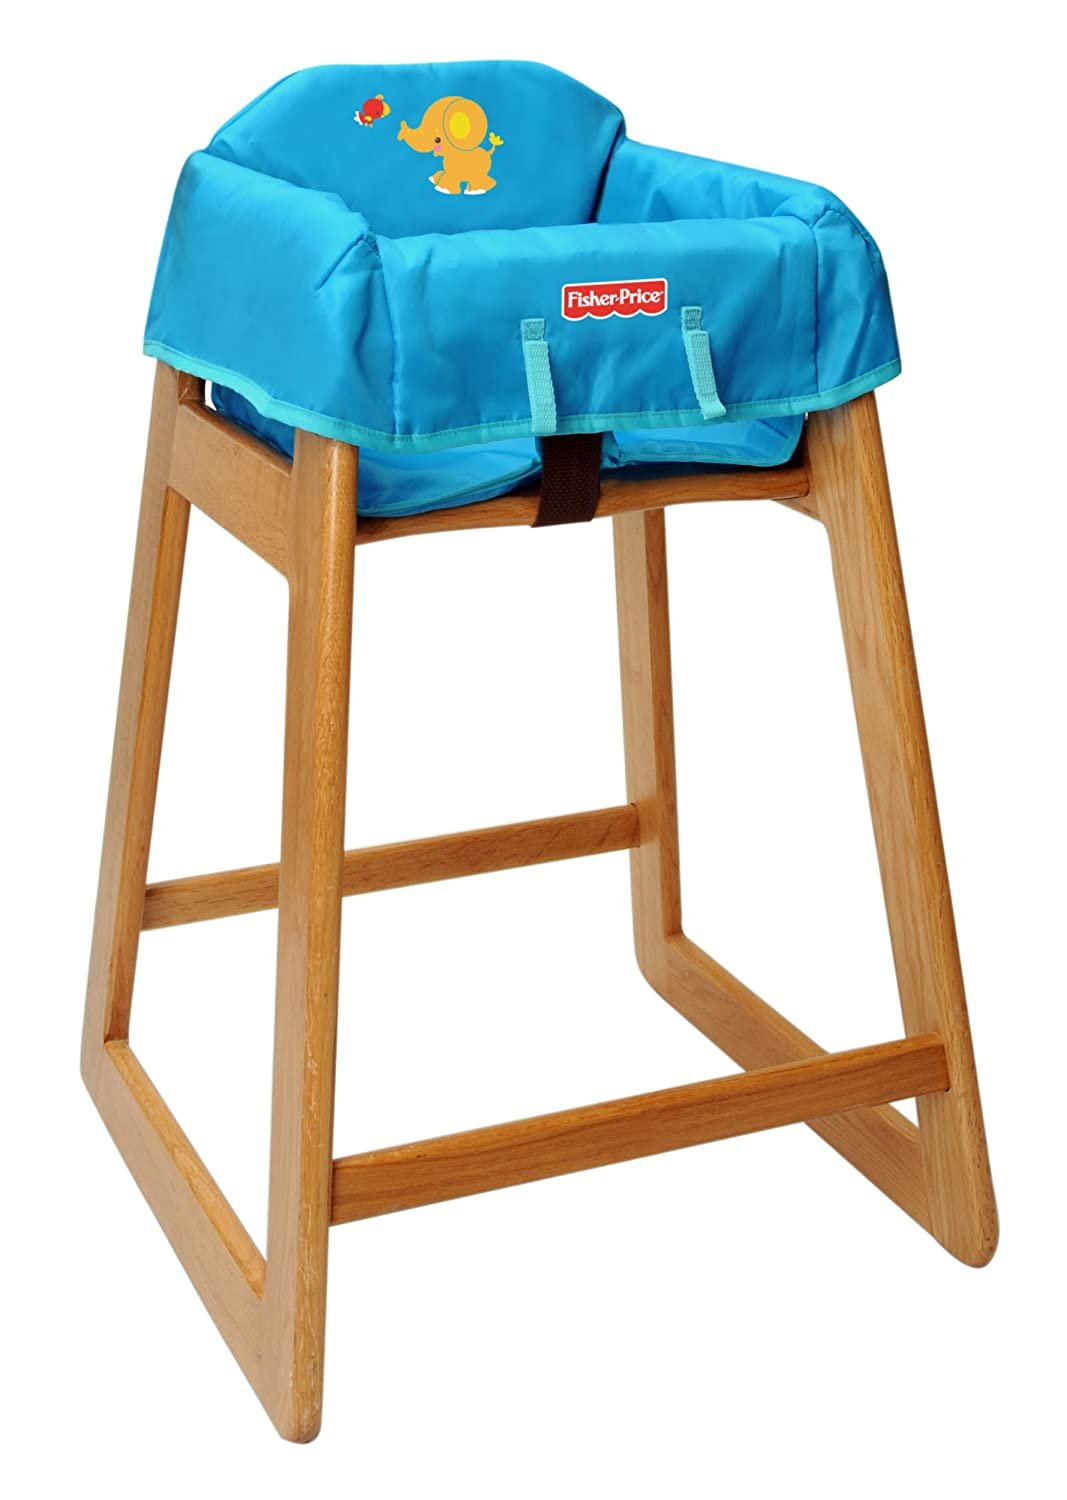 Fisher price precious planet high chair - Amazon Com Fisher Price Precious Planet Portable High Chair Cover Blue Discontinued By Manufacturer Childrens Highchair Covers Baby